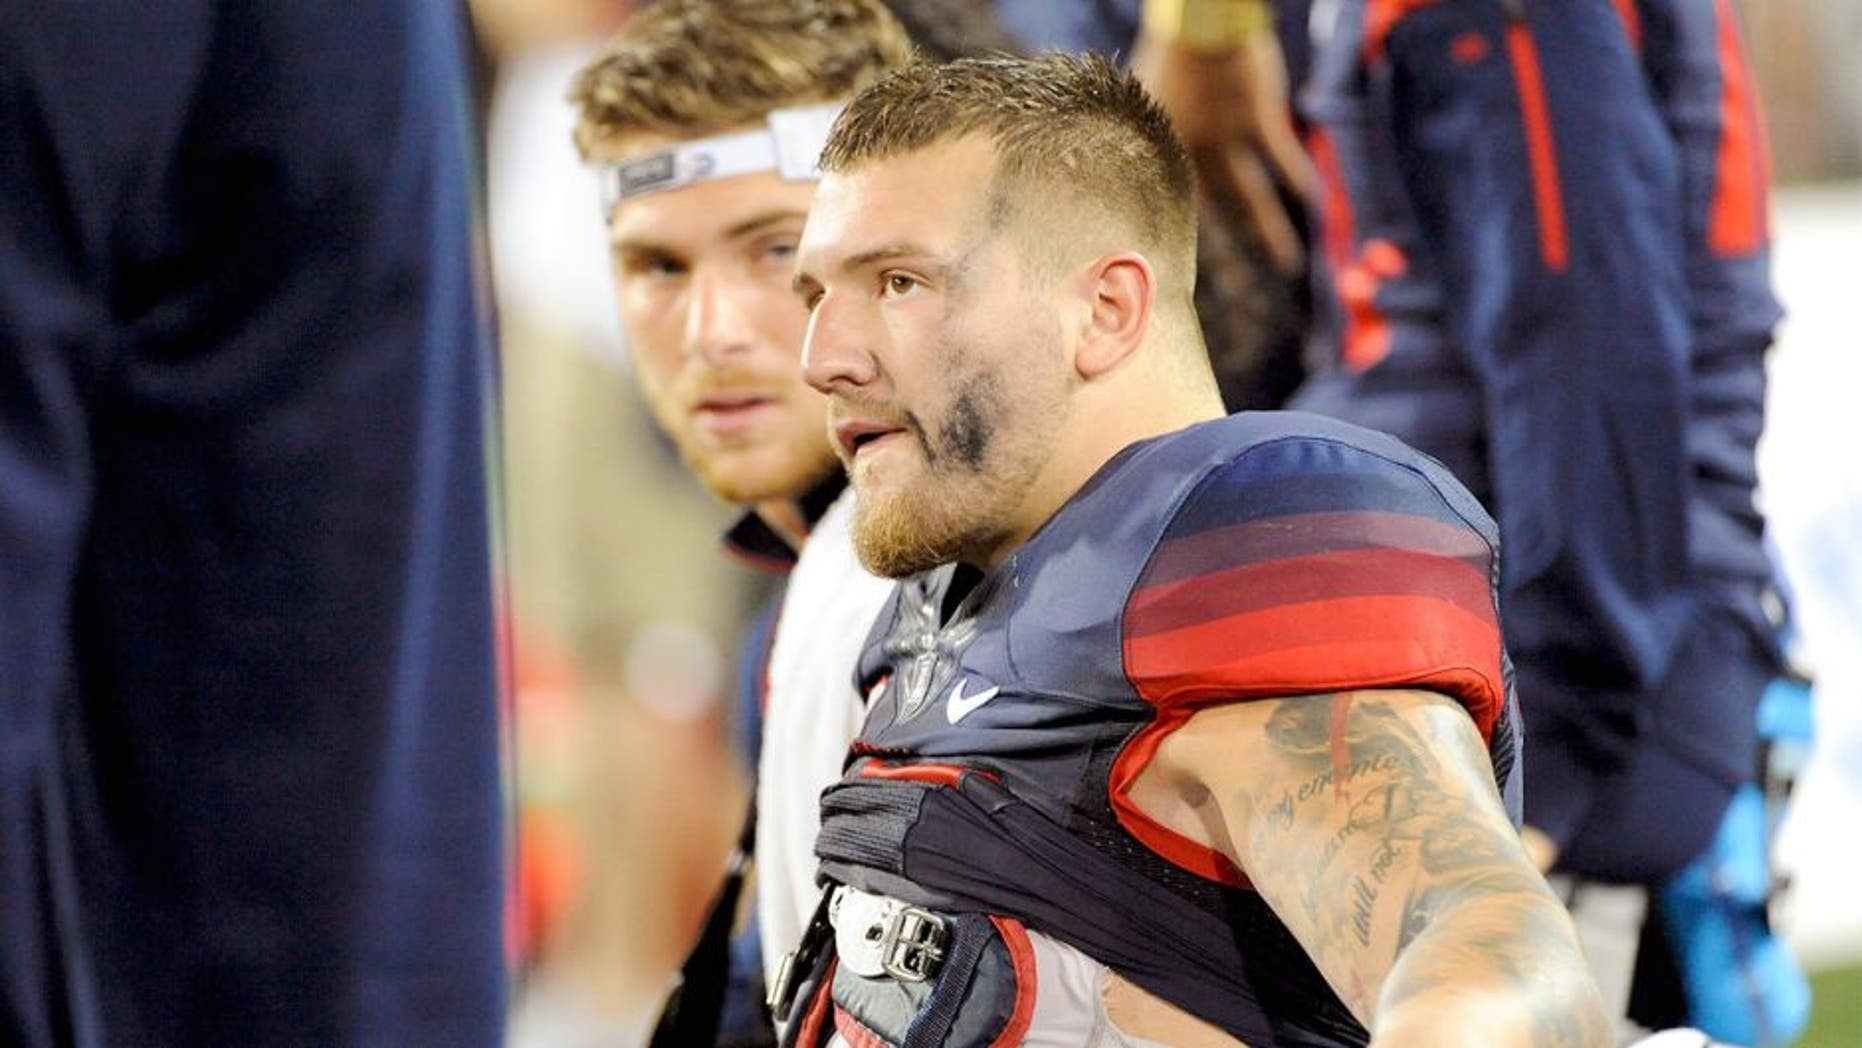 Sep 3, 2015; Tucson, AZ, USA; Arizona Wildcats linebacker Scooby Wright III (33) sits on the bench after coming out of the game during the second quarter against the Texas-San Antonio Roadrunners at Arizona Stadium. Mandatory Credit: Casey Sapio-USA TODAY Sports